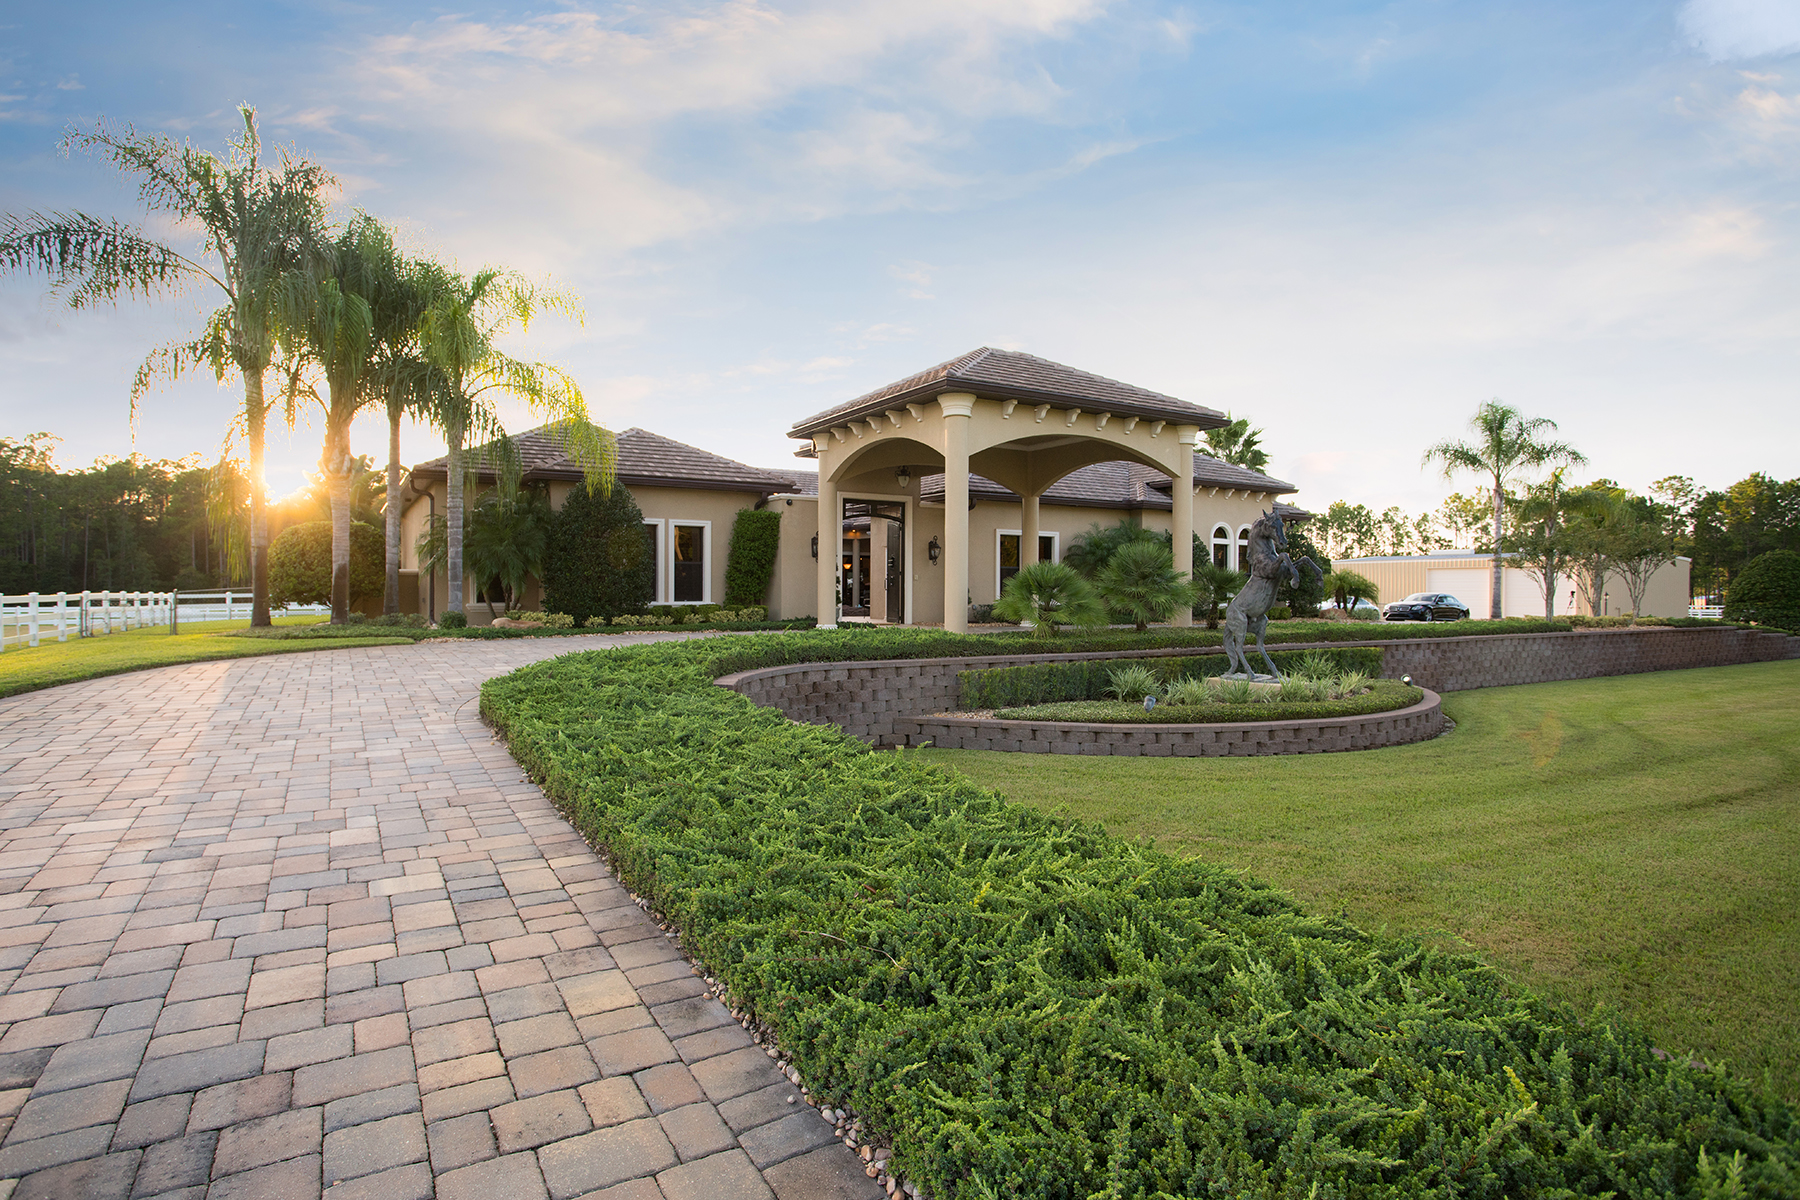 Additional photo for property listing at 330 Spring Forest Dr , New Smyrna Beach, FL 32168 330  Spring Forest Dr,  New Smyrna Beach, Florida 32168 United States